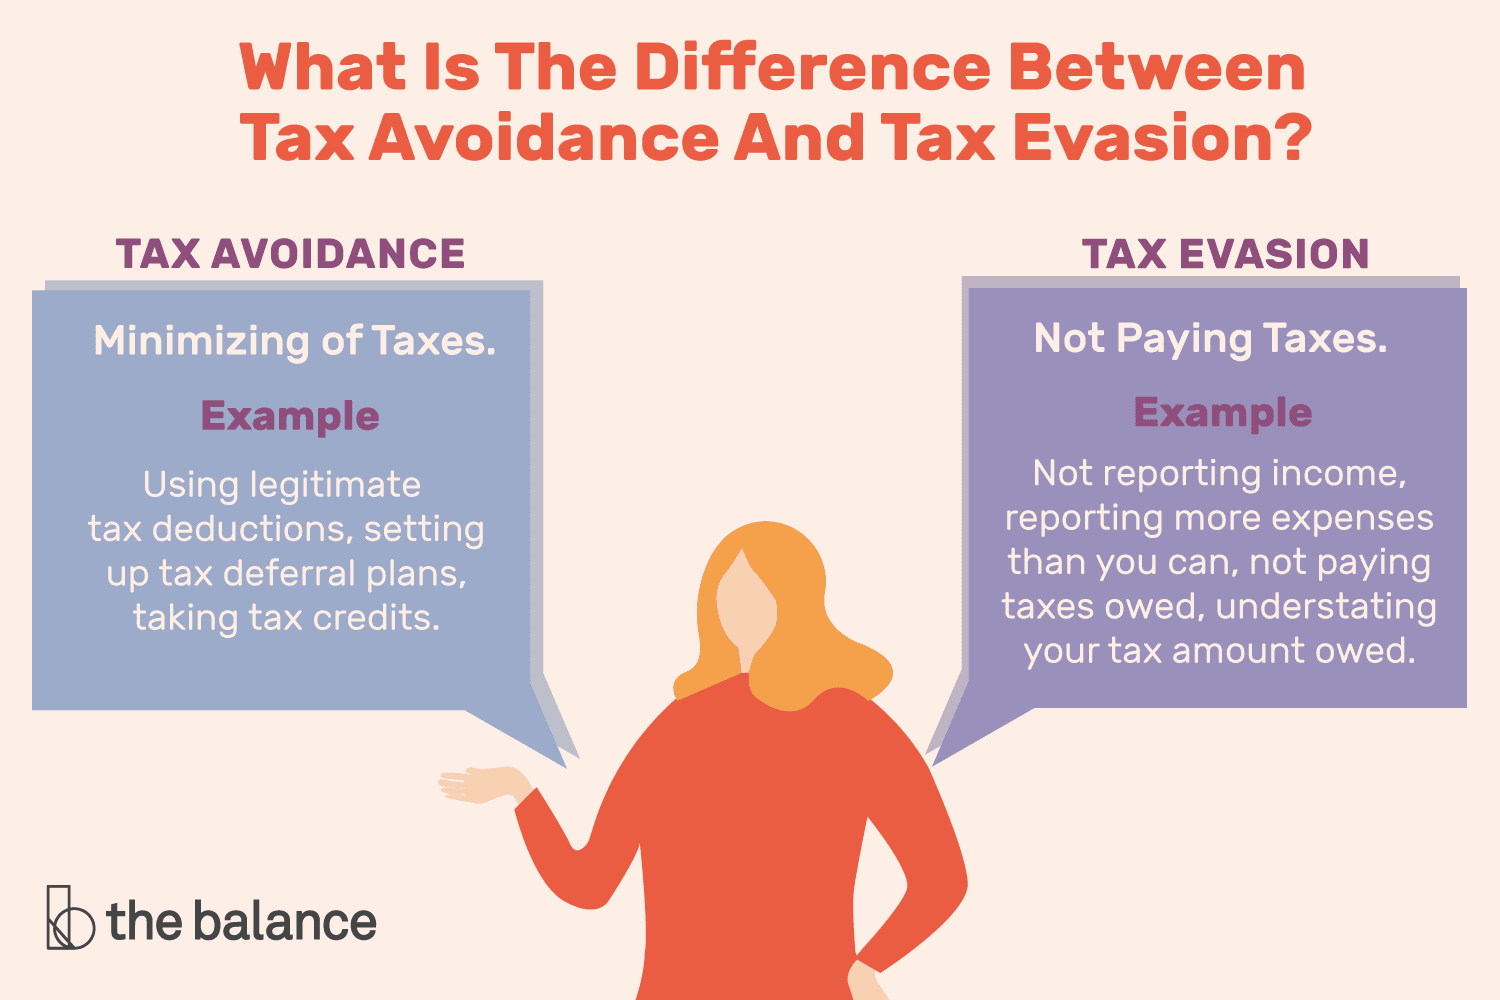 tax avoidance and tax evasion — what is the difference?